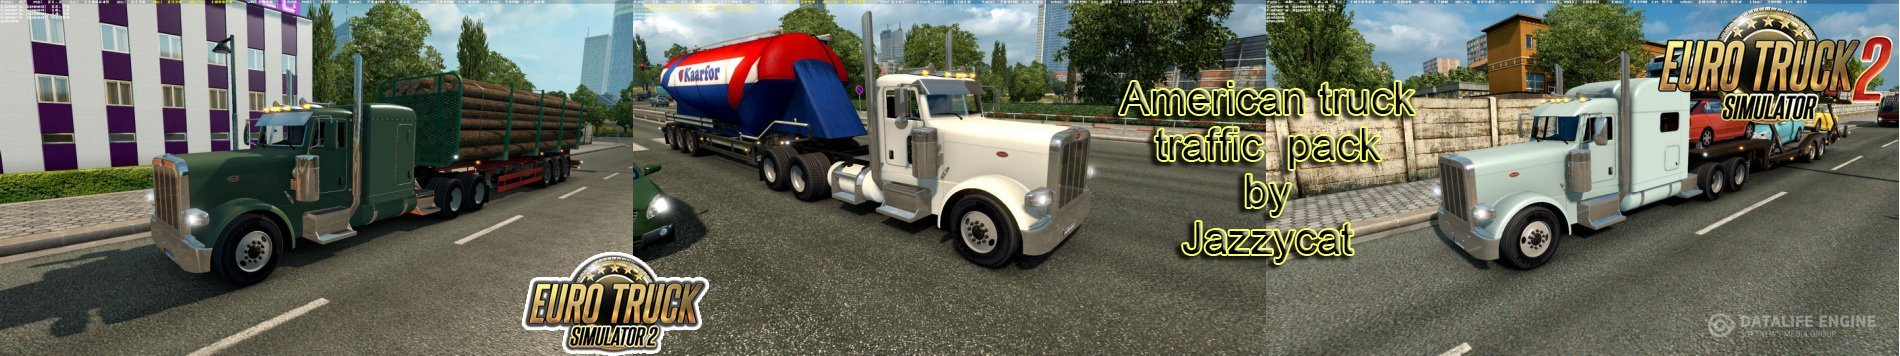 American Truck Traffic Pack v 1.4 by Jazzycat